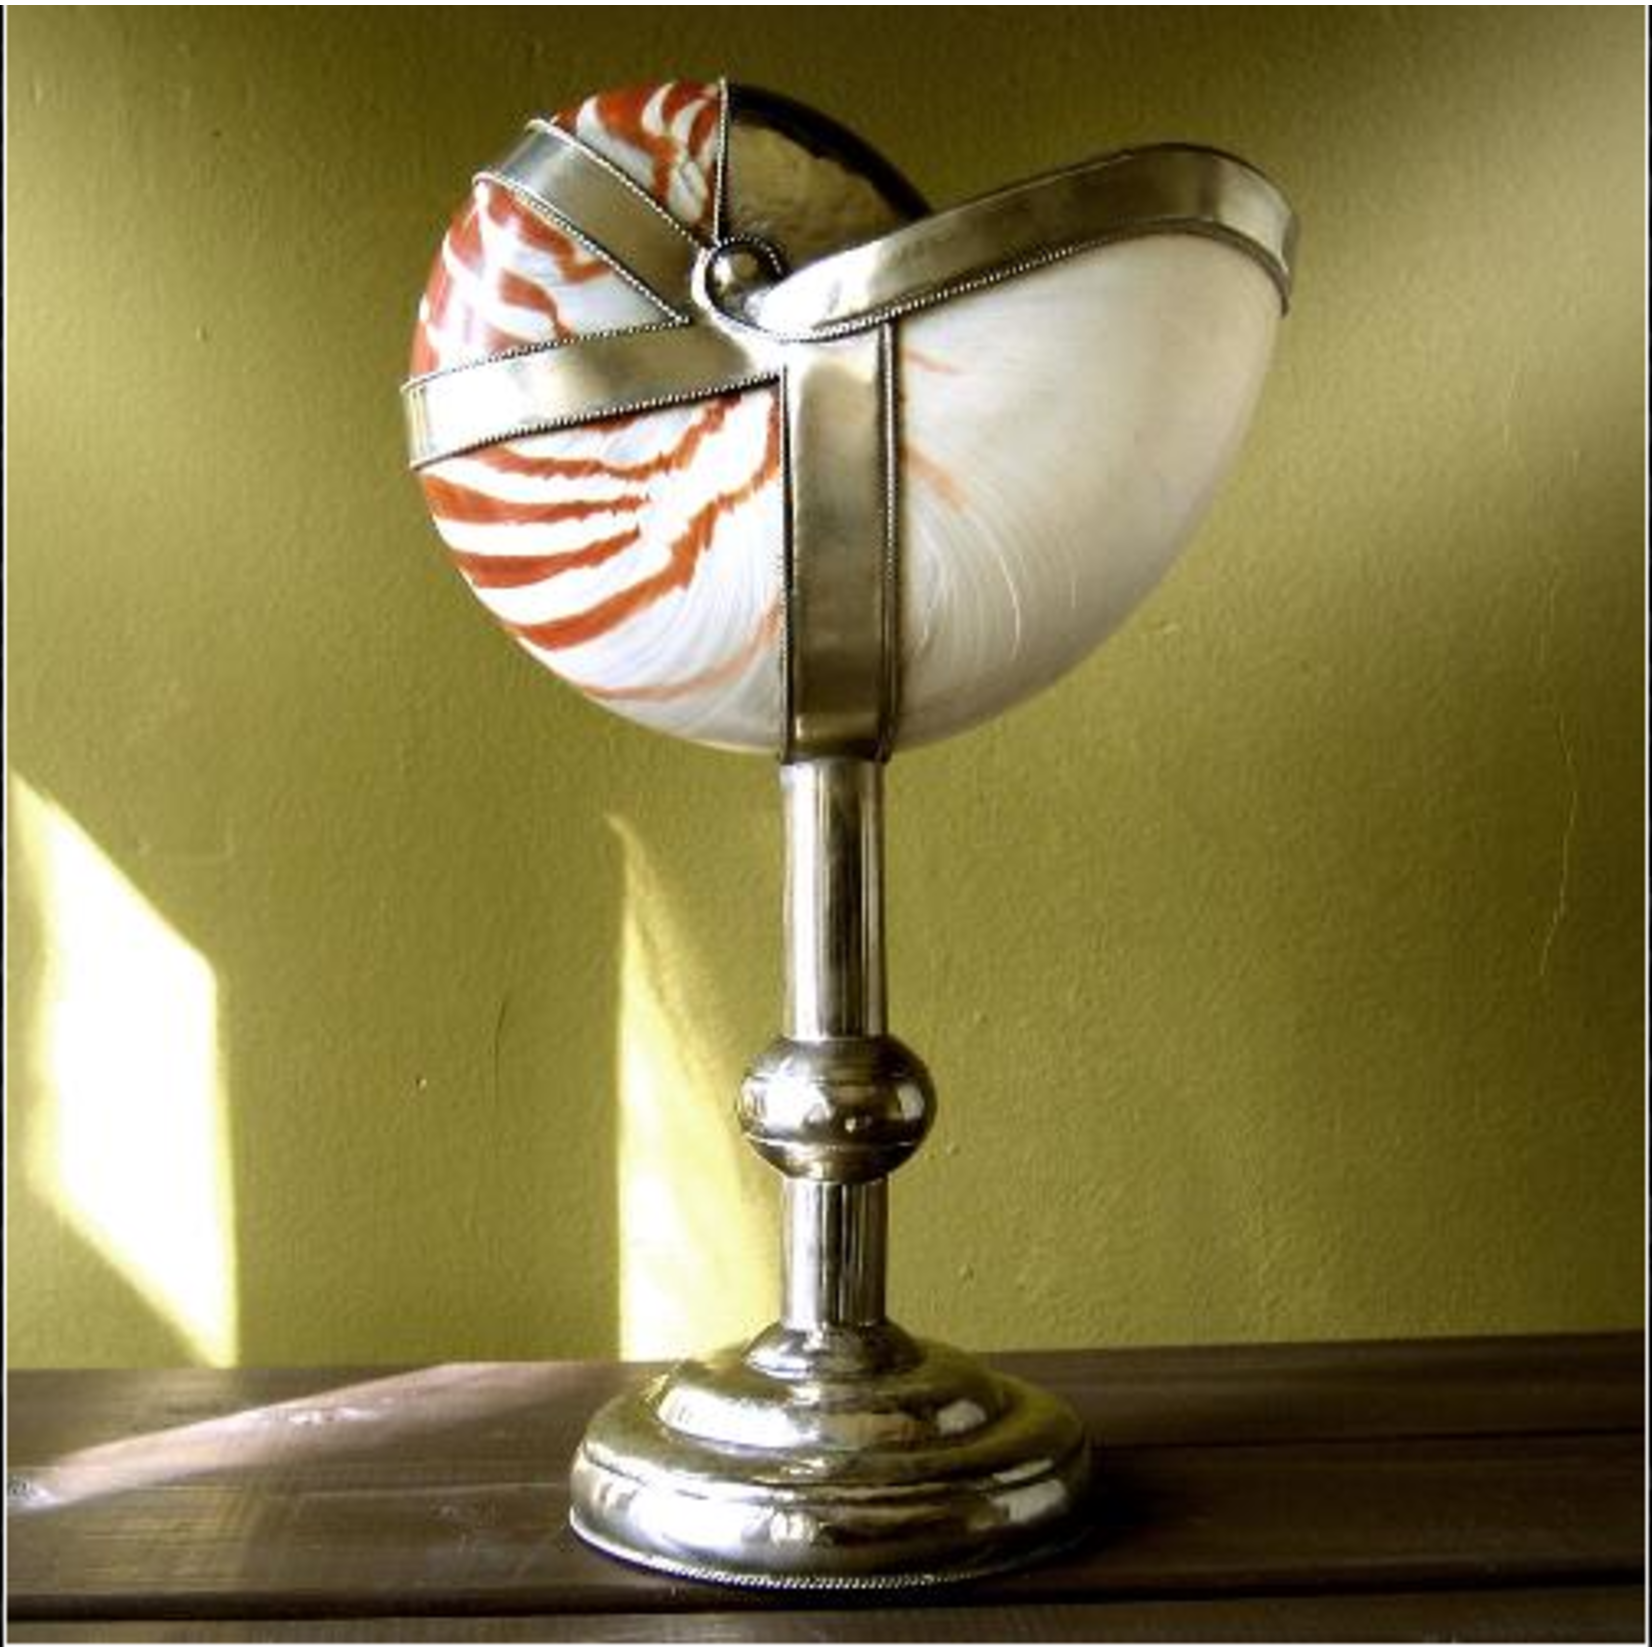 OBJET DE CURIOSITE Nautilus shell dressed up with silver met